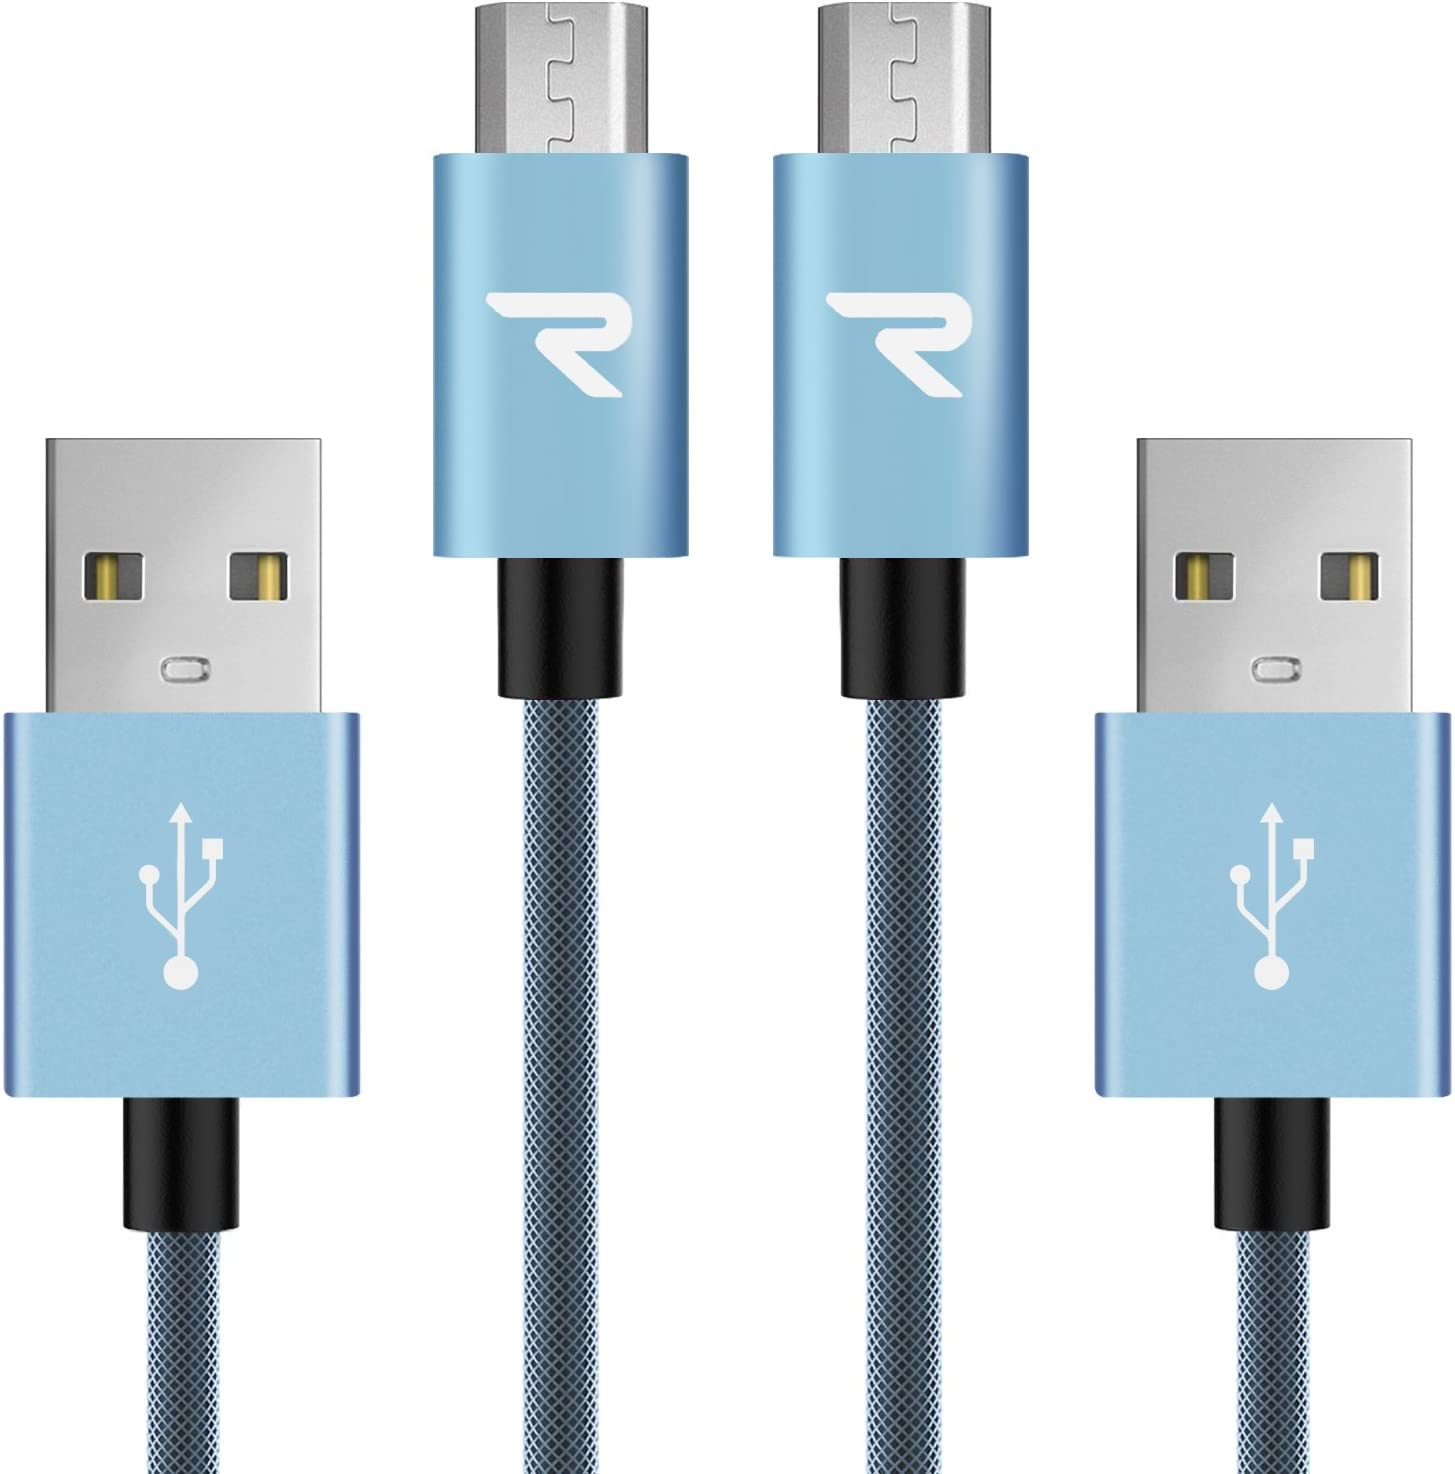 RAMPOW Braided Micro USB Cable [2-Pack 3.3ft], Fast USB Charging Cable Compatible with Samsung Galaxy S7/S6, Sony, HTC, Moto and More - Blue